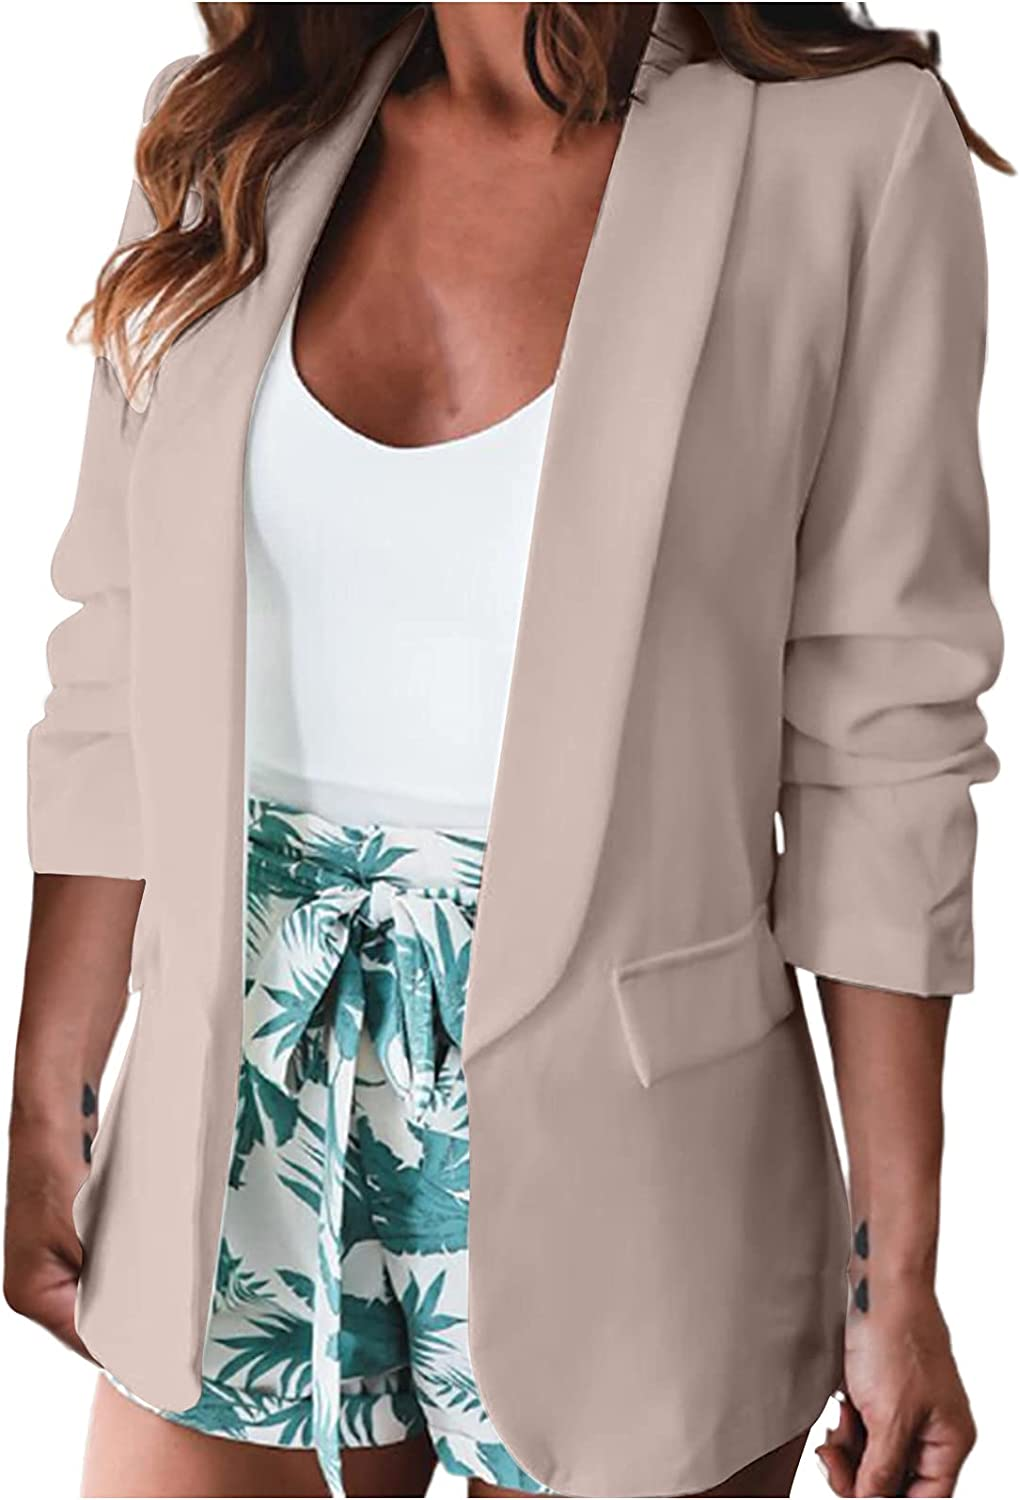 Women's Blazers Tops Workout Fall Long Sleeve Notched Sexy Casual Coat with Pockets Solid Color/Floral Print Cardigan